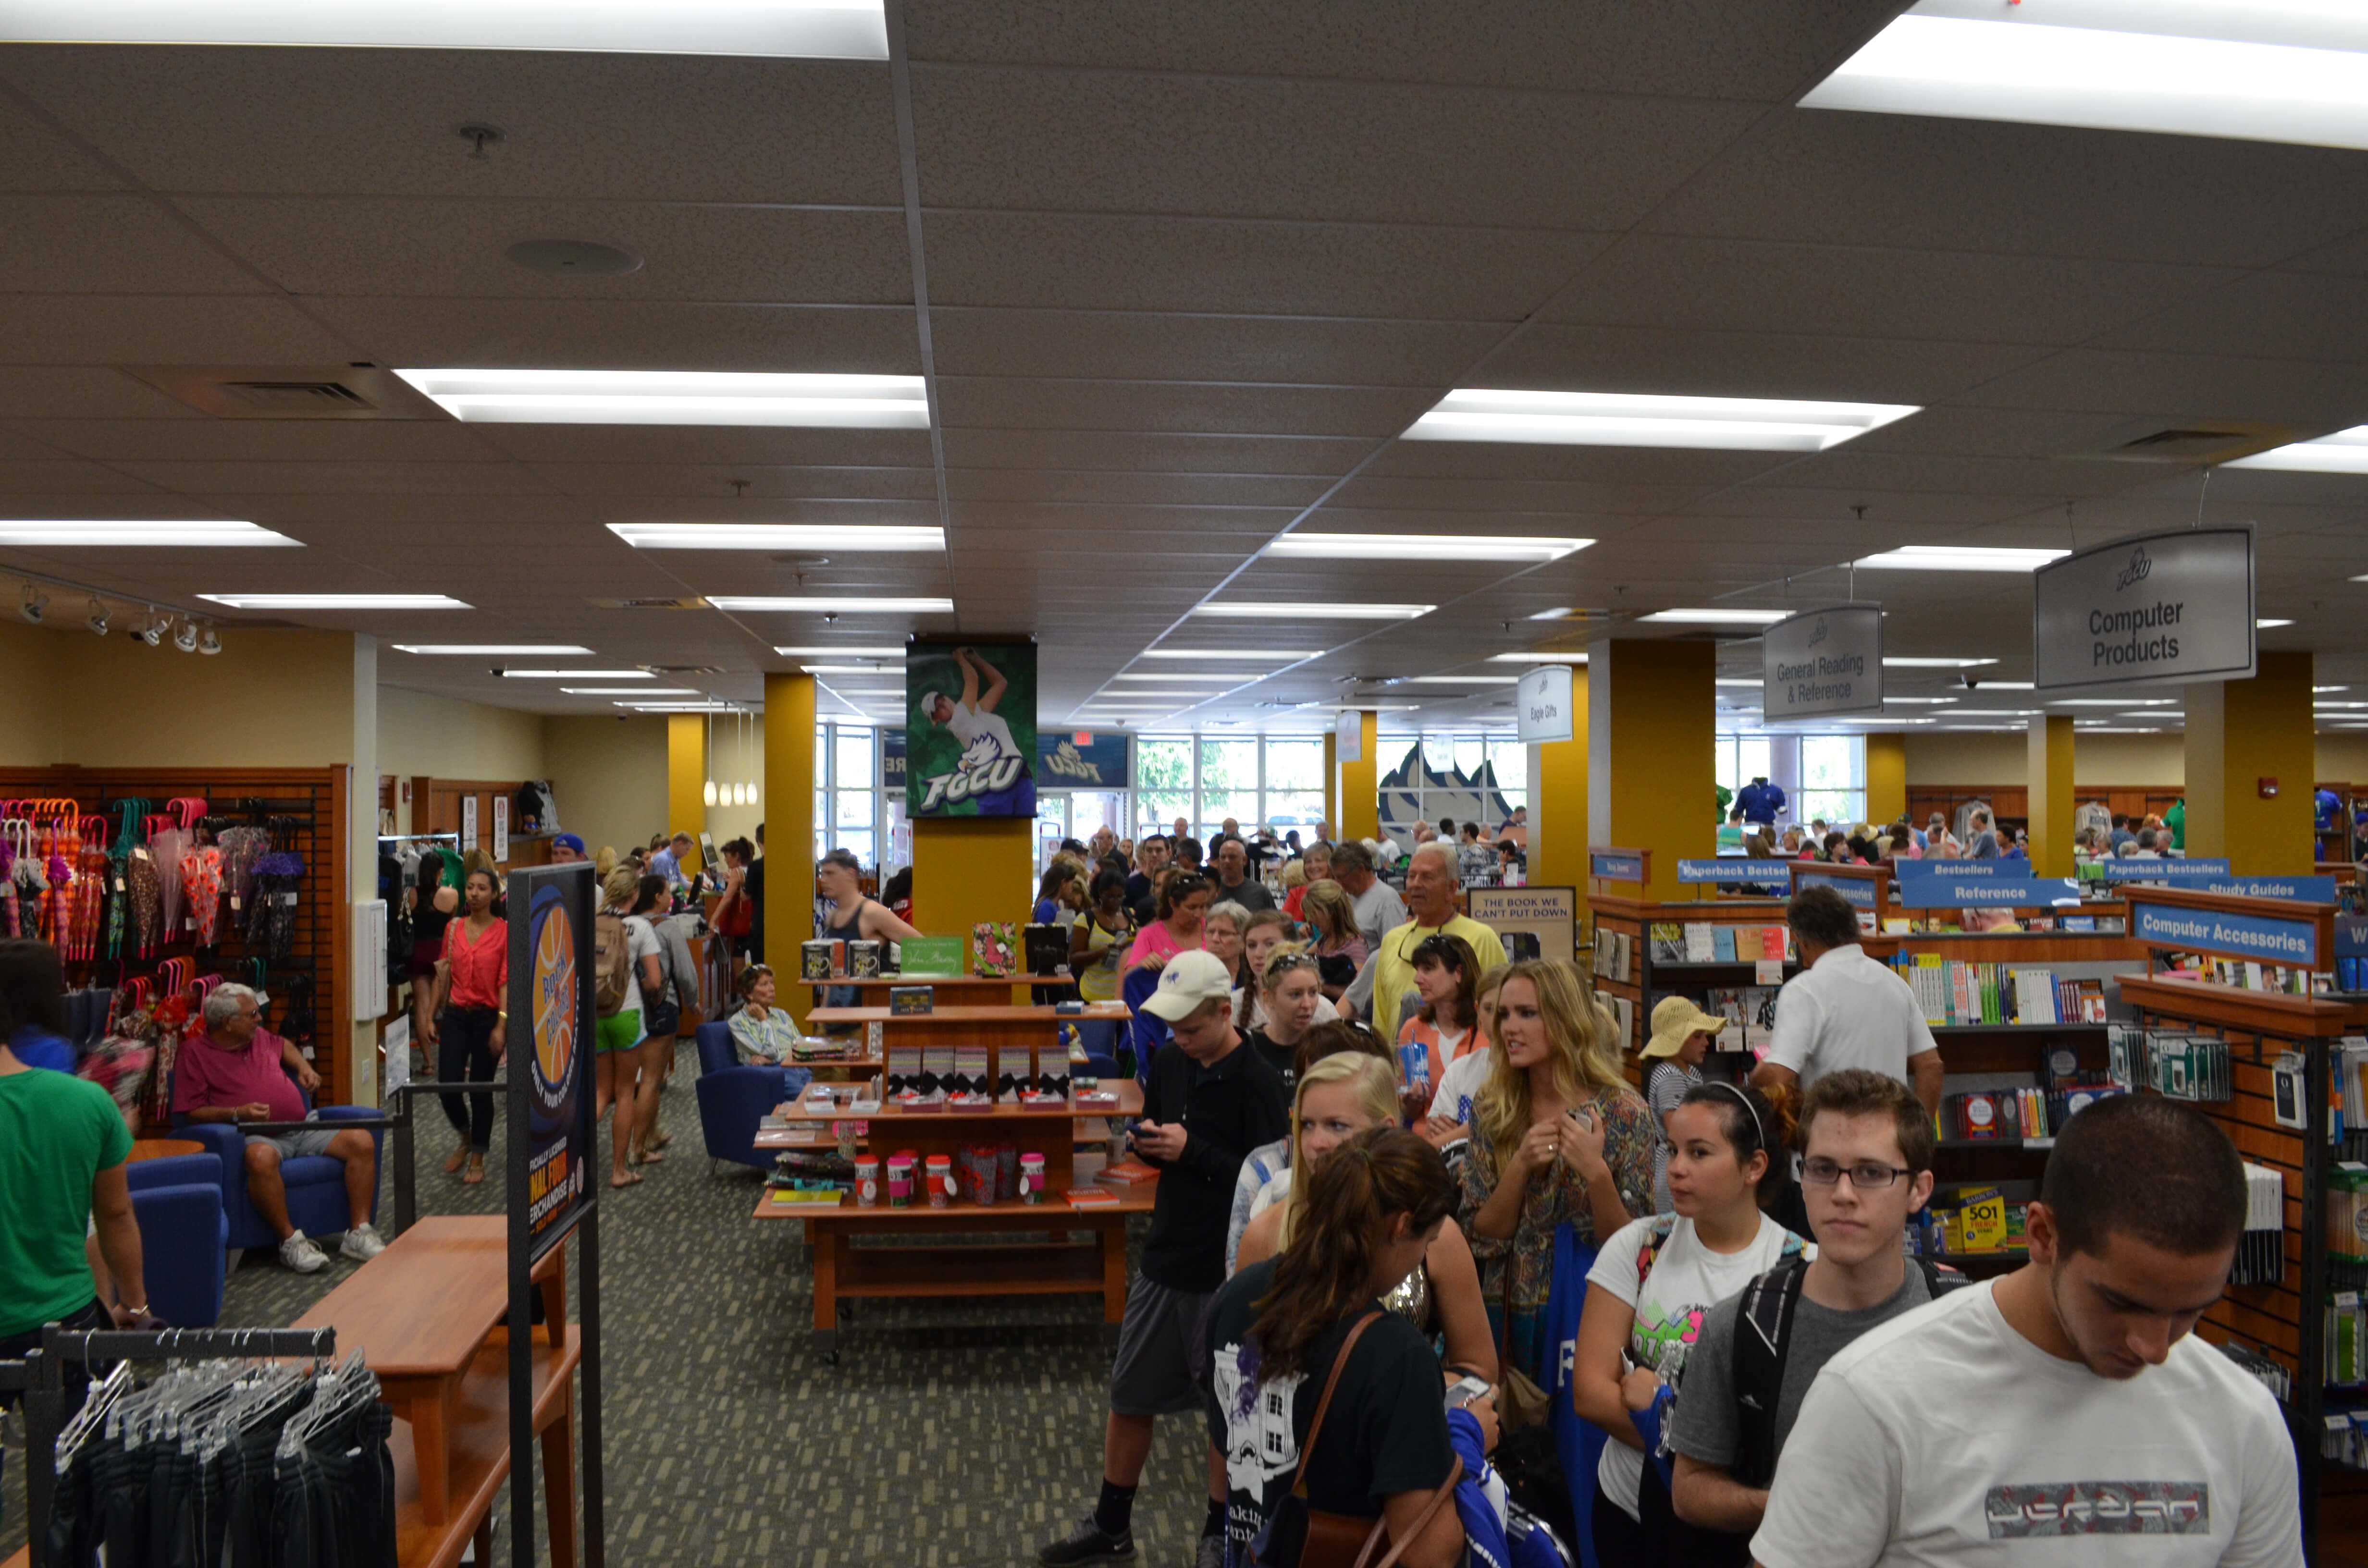 NCAA wins boost school pride and bookstore sales at FGCU